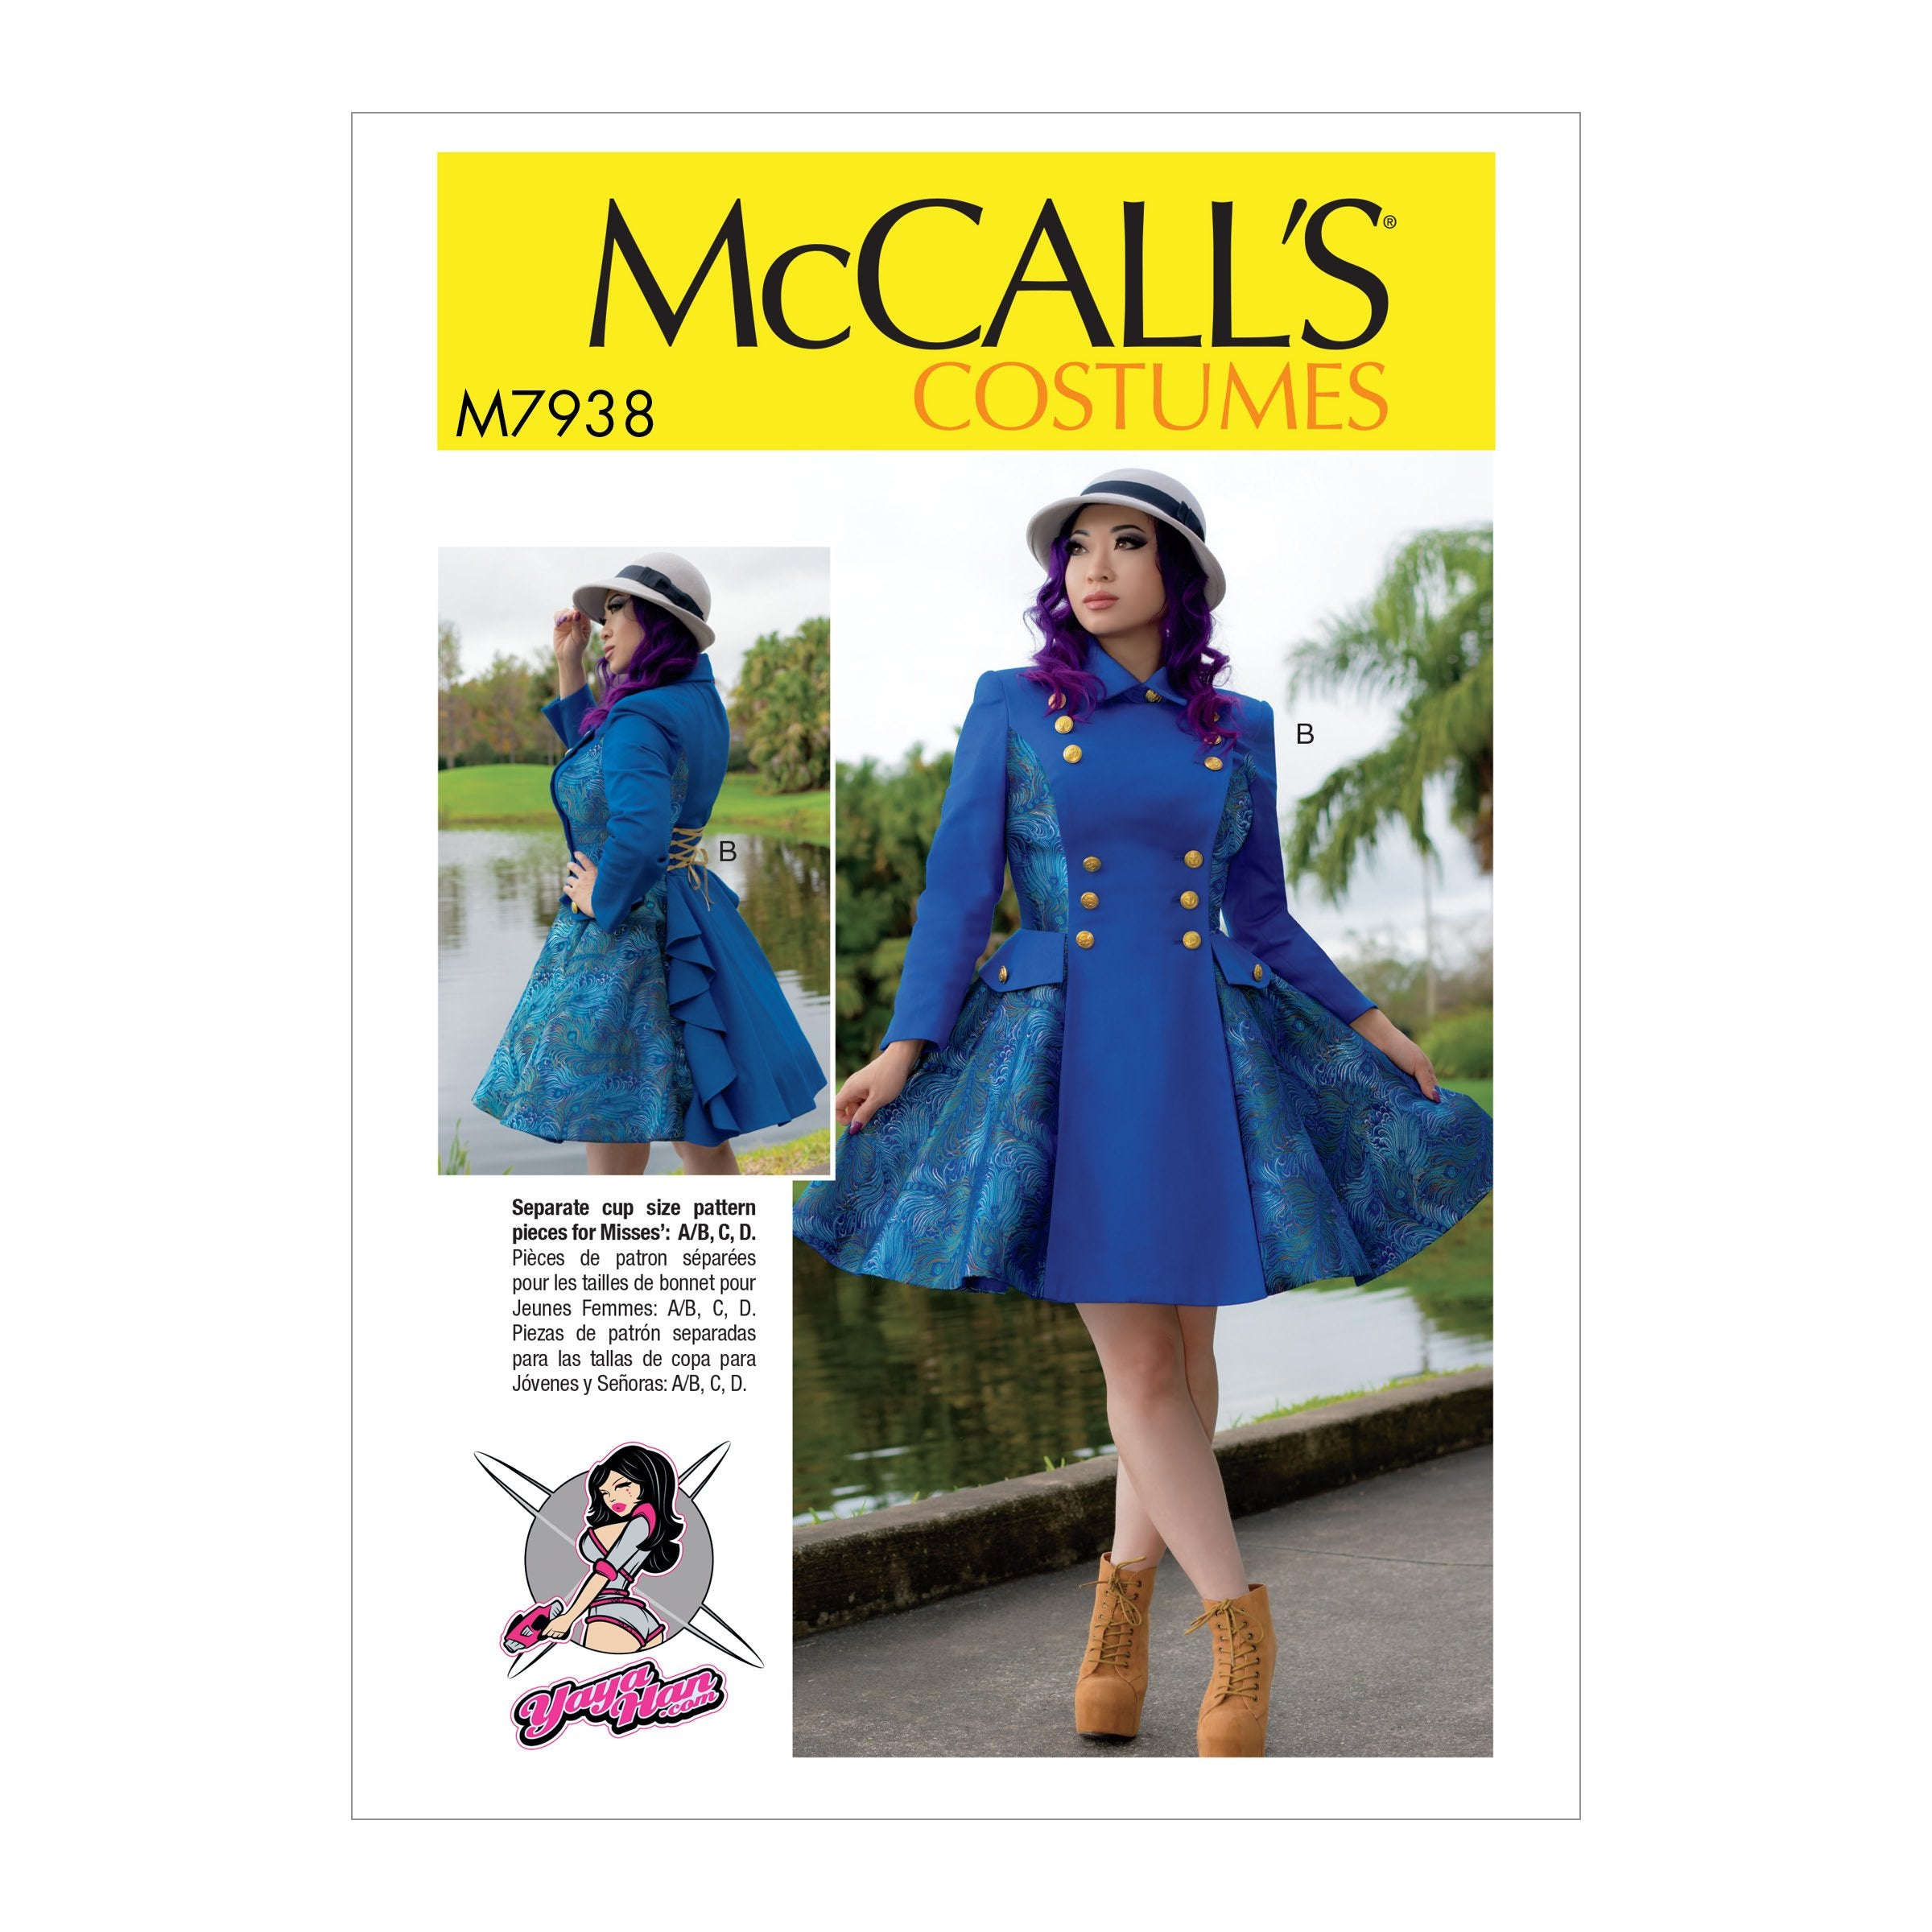 McCall's 7938 Misses' Costume pattern